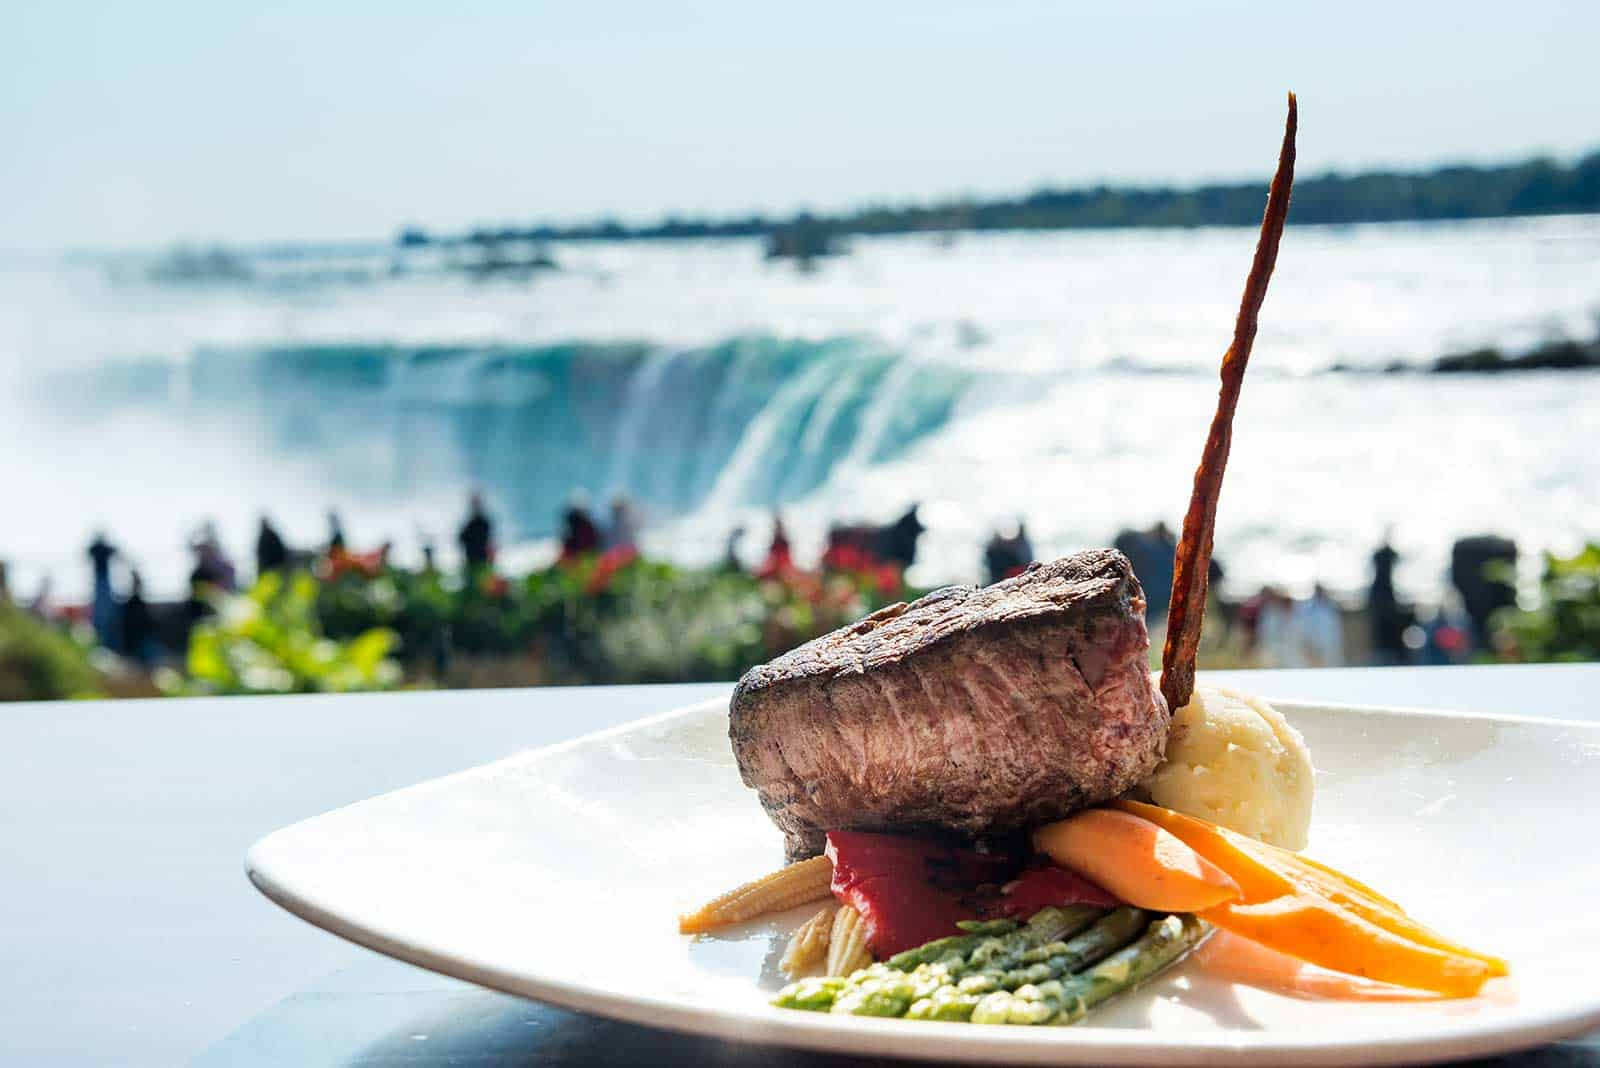 Dine at the edge of the Horseshoe Falls